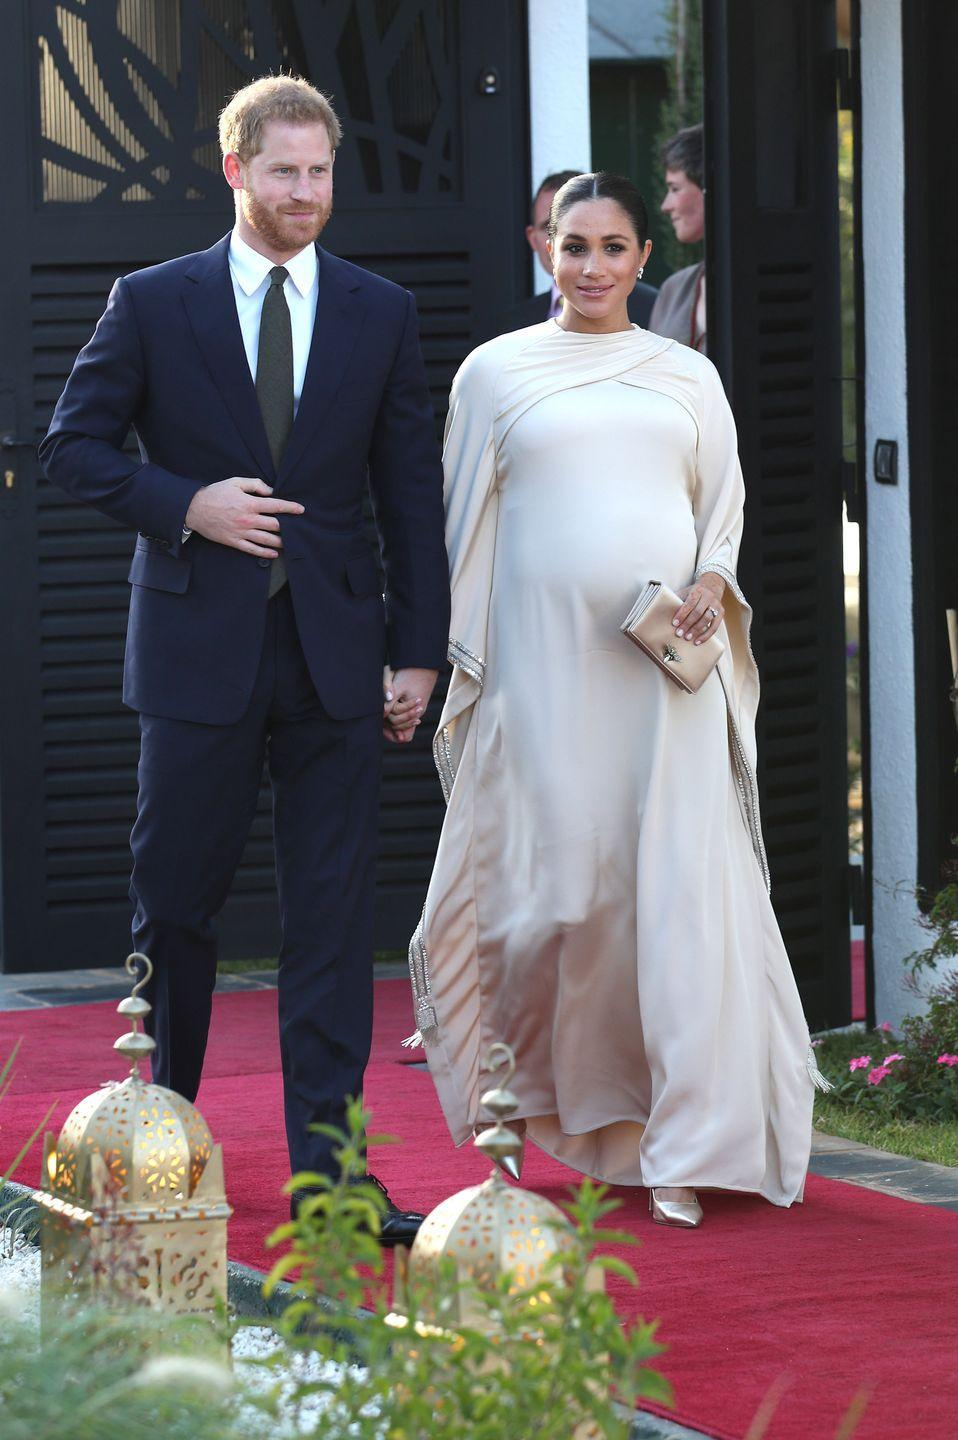 <p>The Duke and Duchess of Sussex arrive at a reception hosted by the British Ambassador to Morocco. </p>